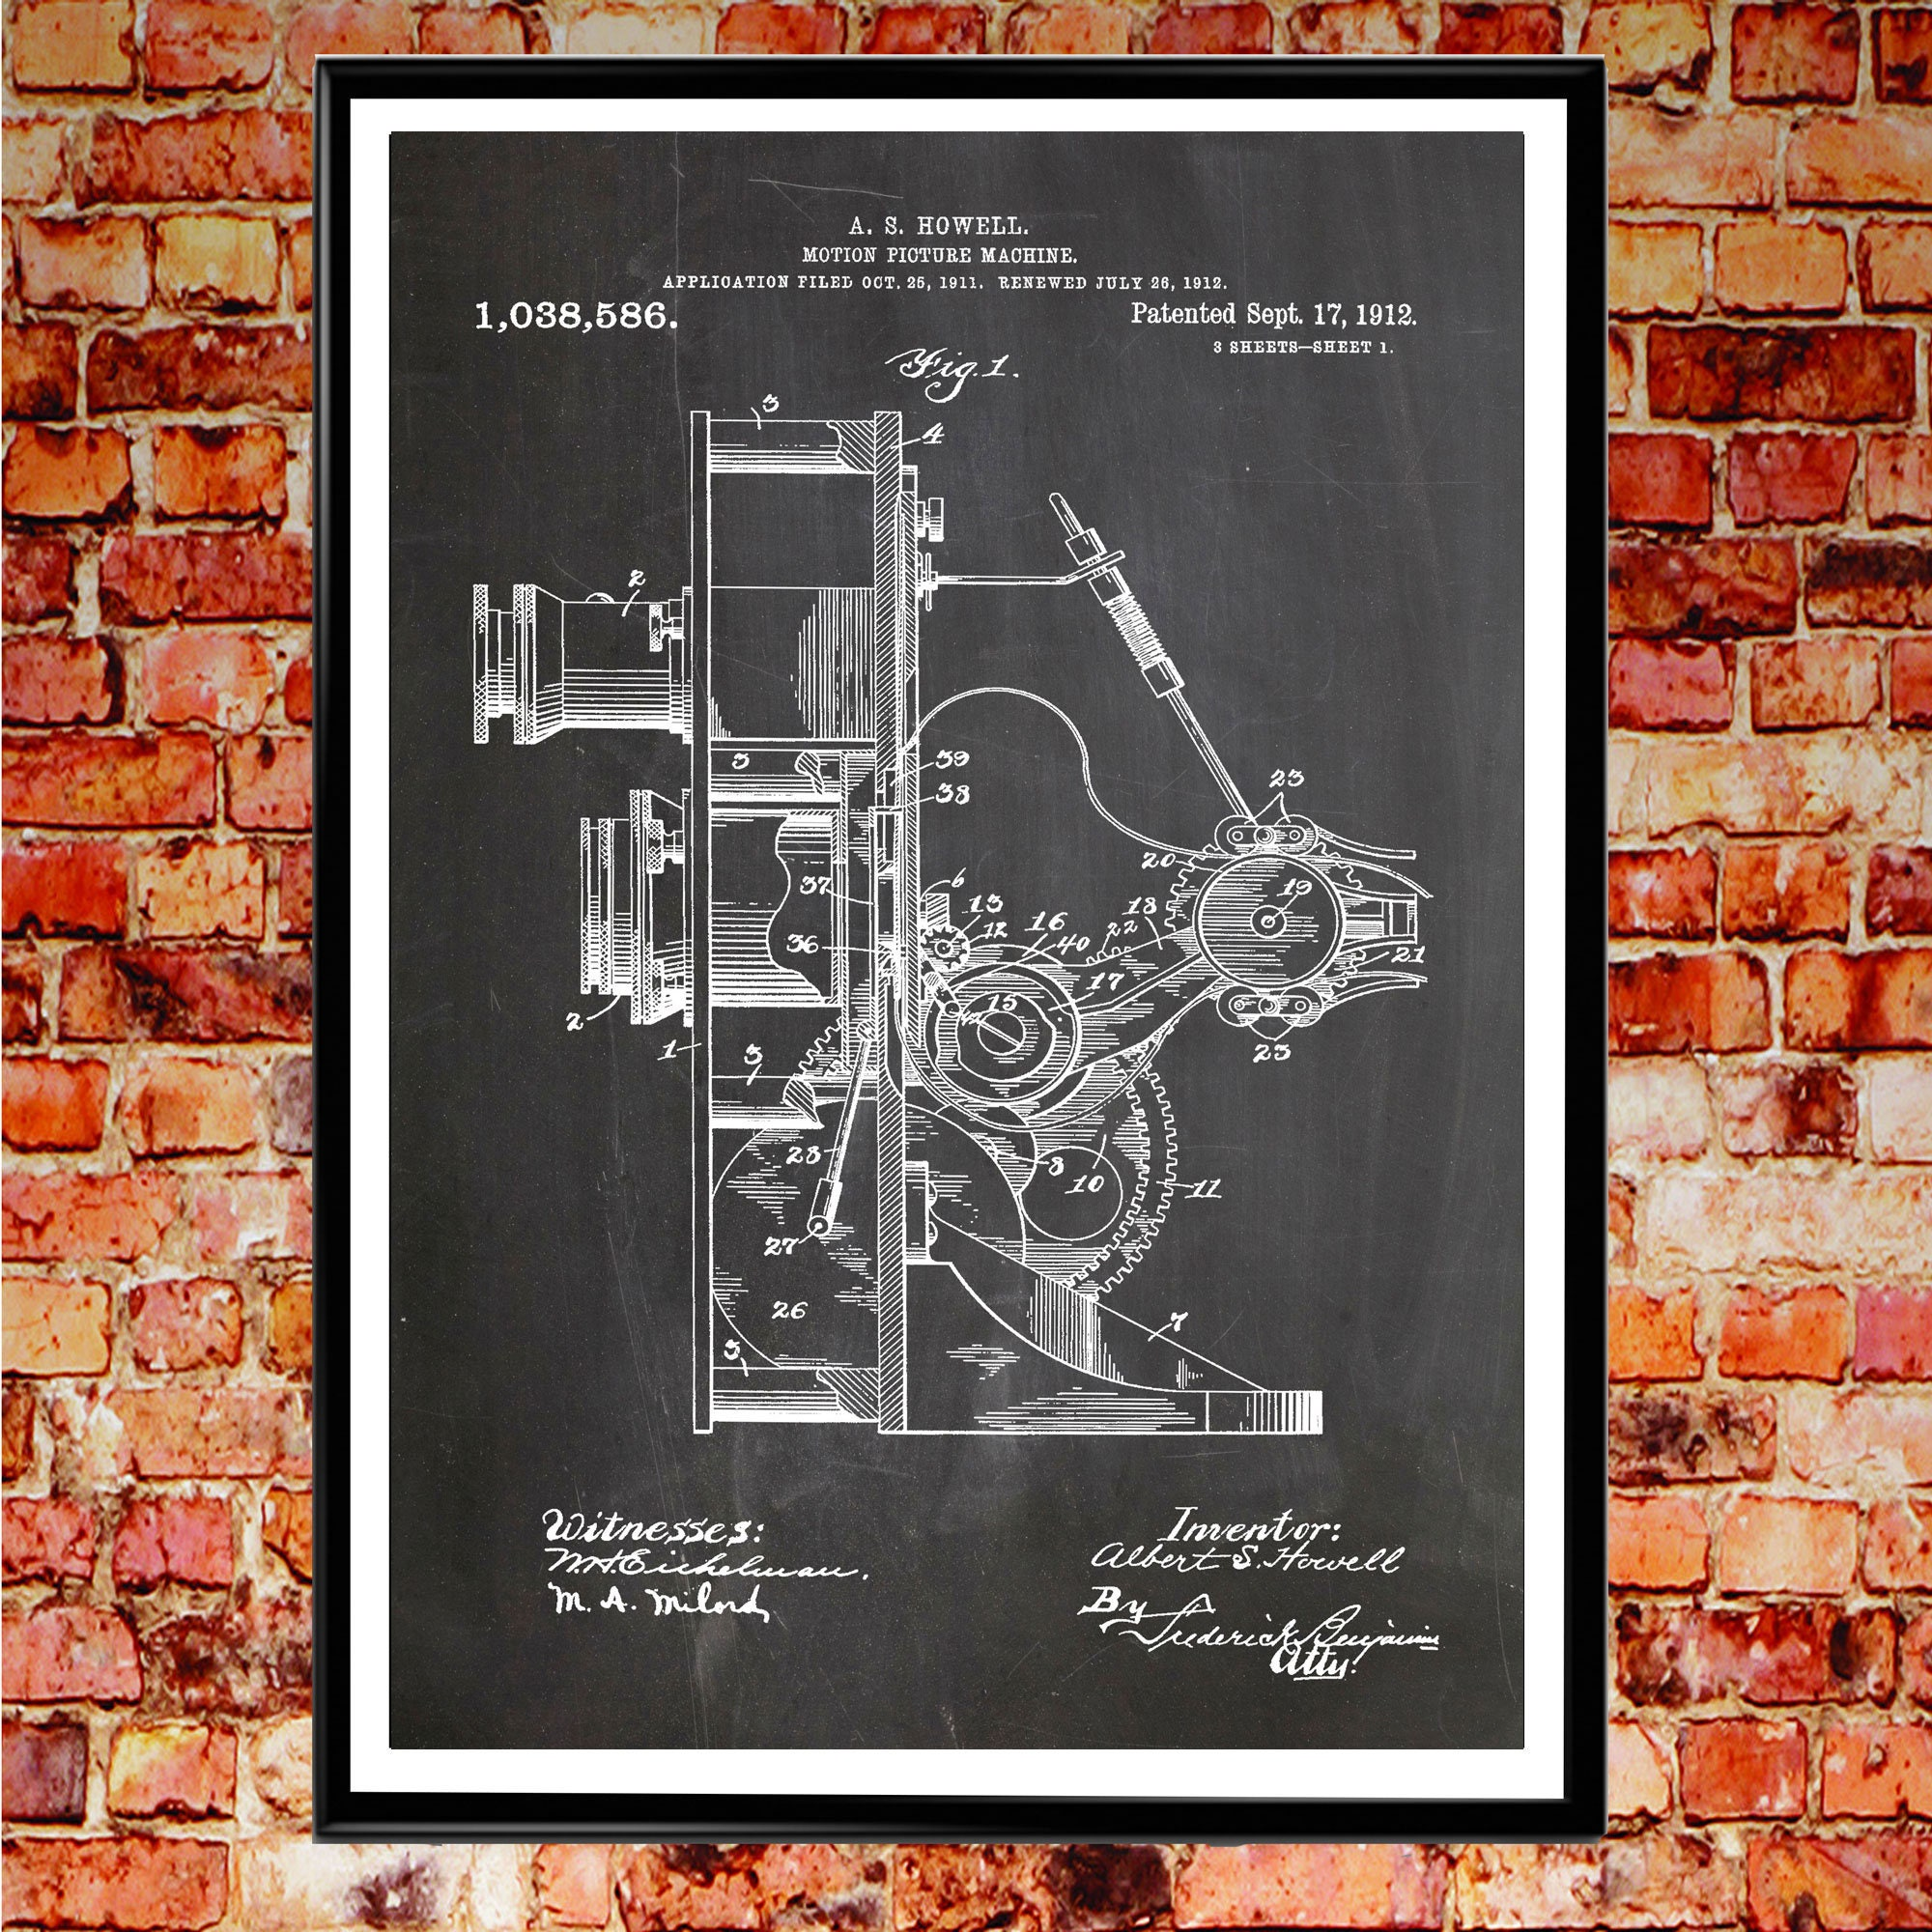 Movie camera patent poster movie blueprint wall art movie decor for movie camera patent poster movie blueprint wall art movie decor for movie room cinema art film poster wb088 malvernweather